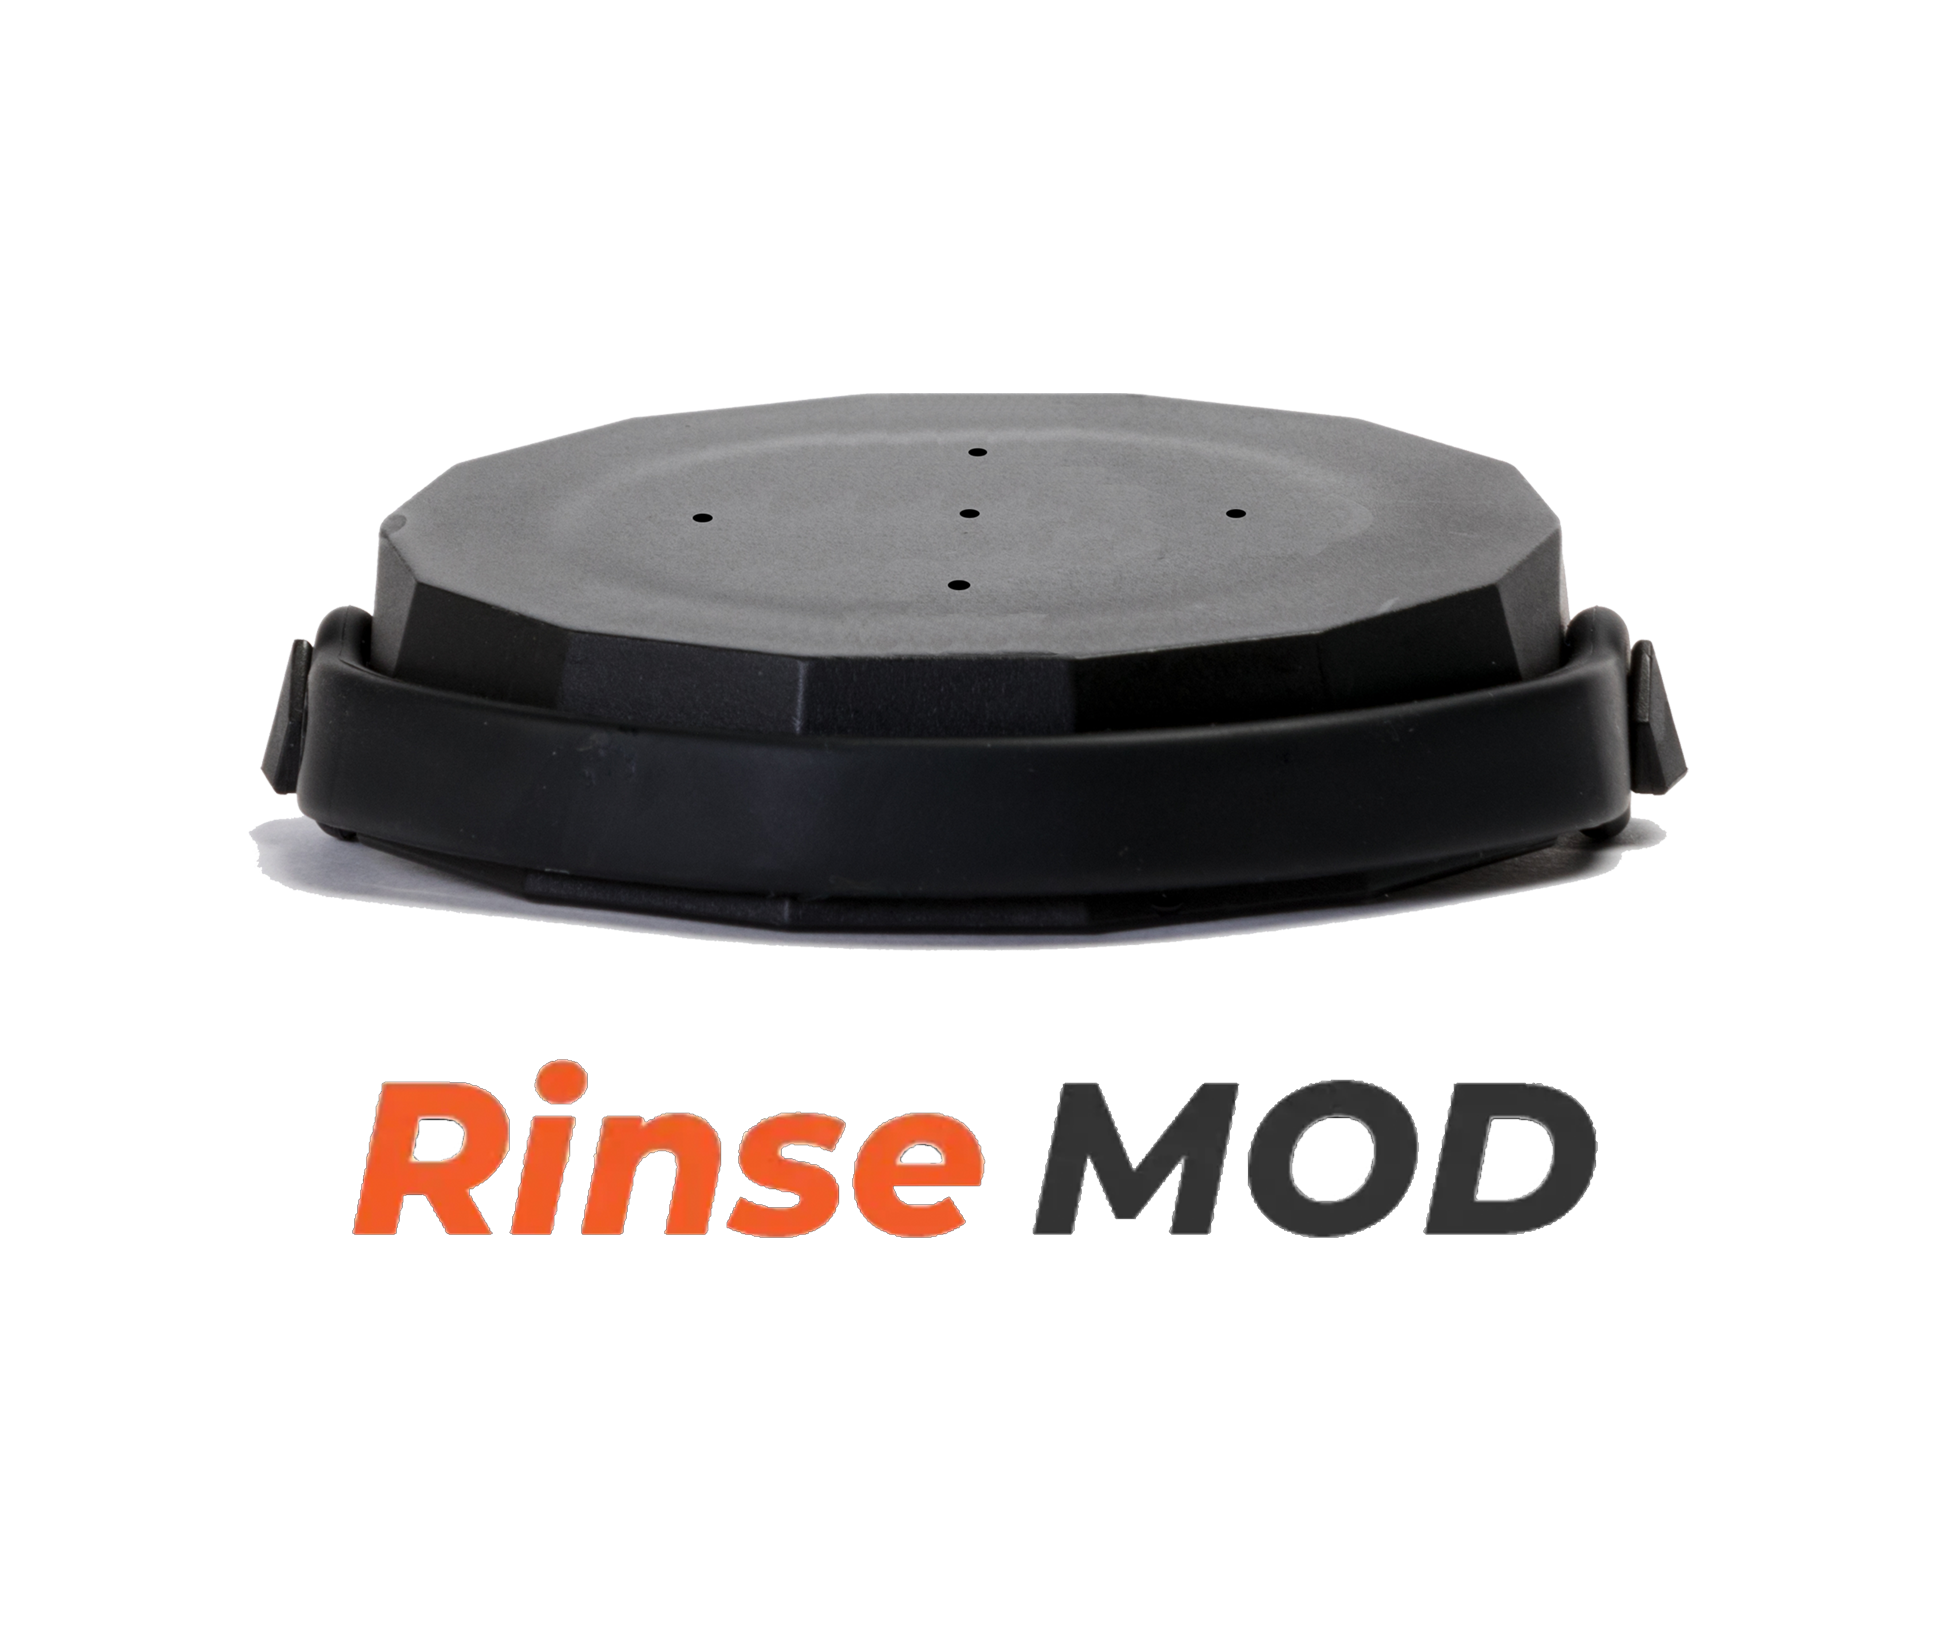 Image of the Rinse MOD for the MODL utility bottle